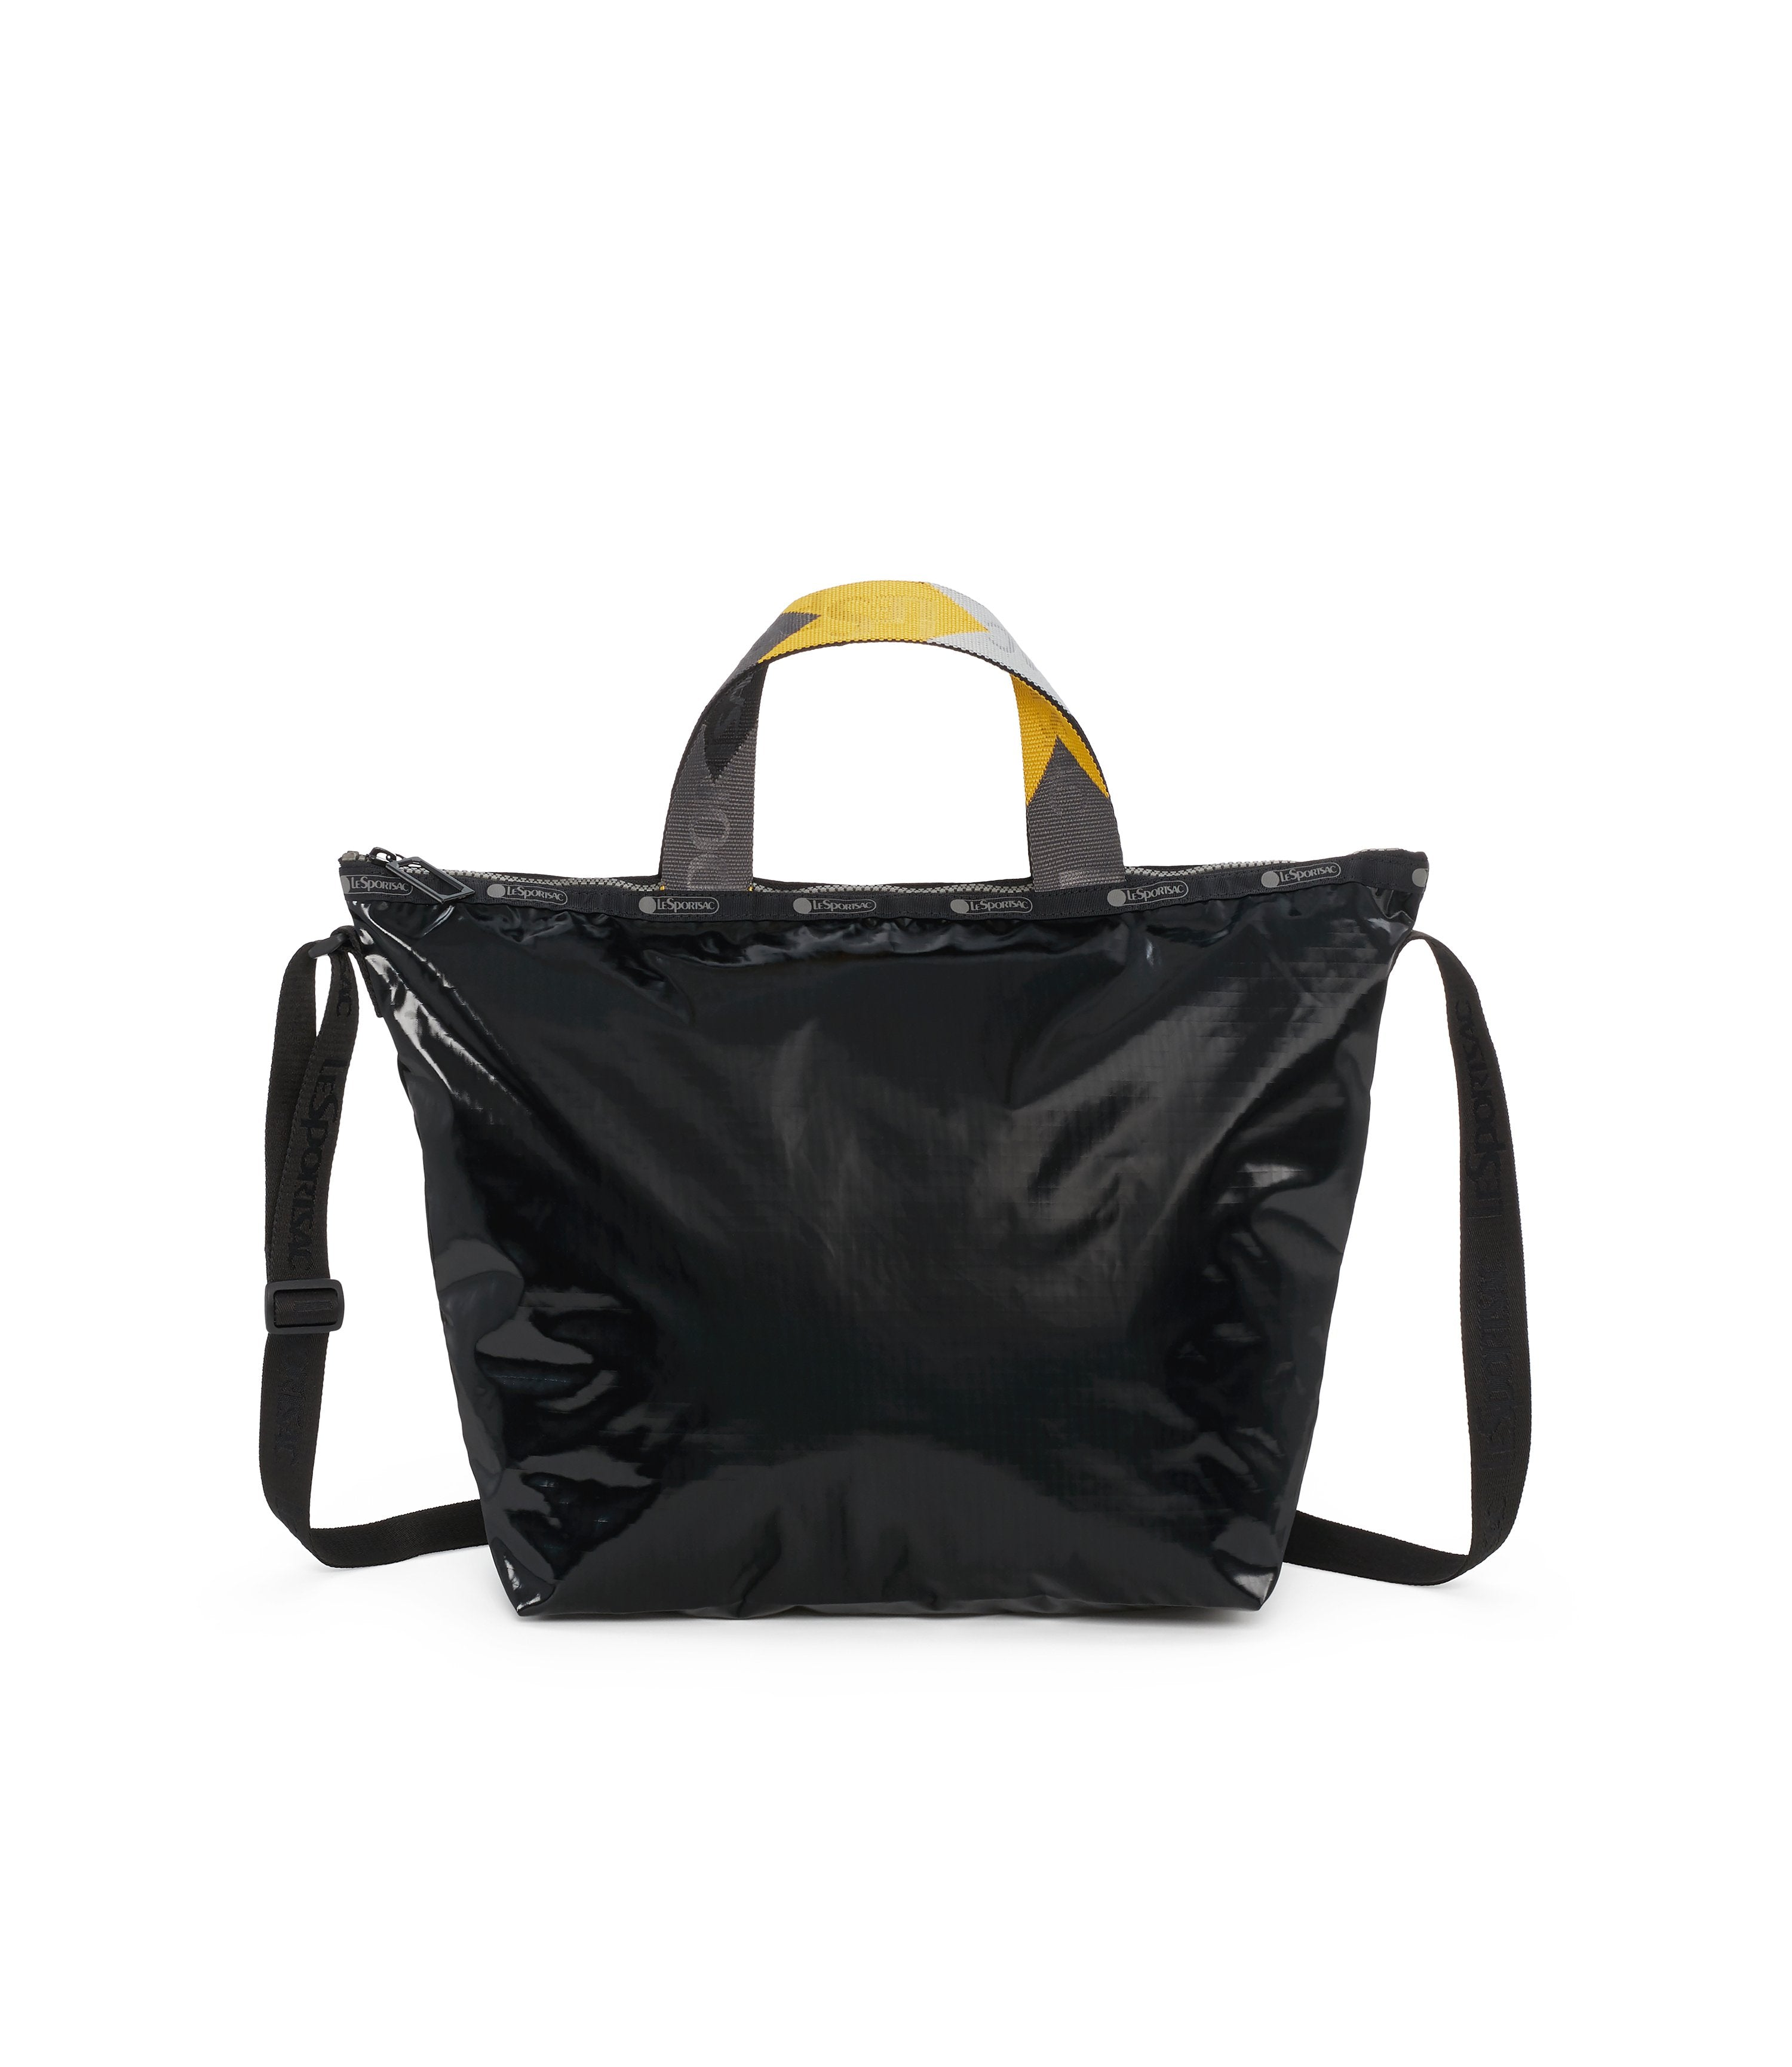 Easy Carry Tote, Nylon Tote Bags, LeSportsac, Black Arrow Liquid Patent